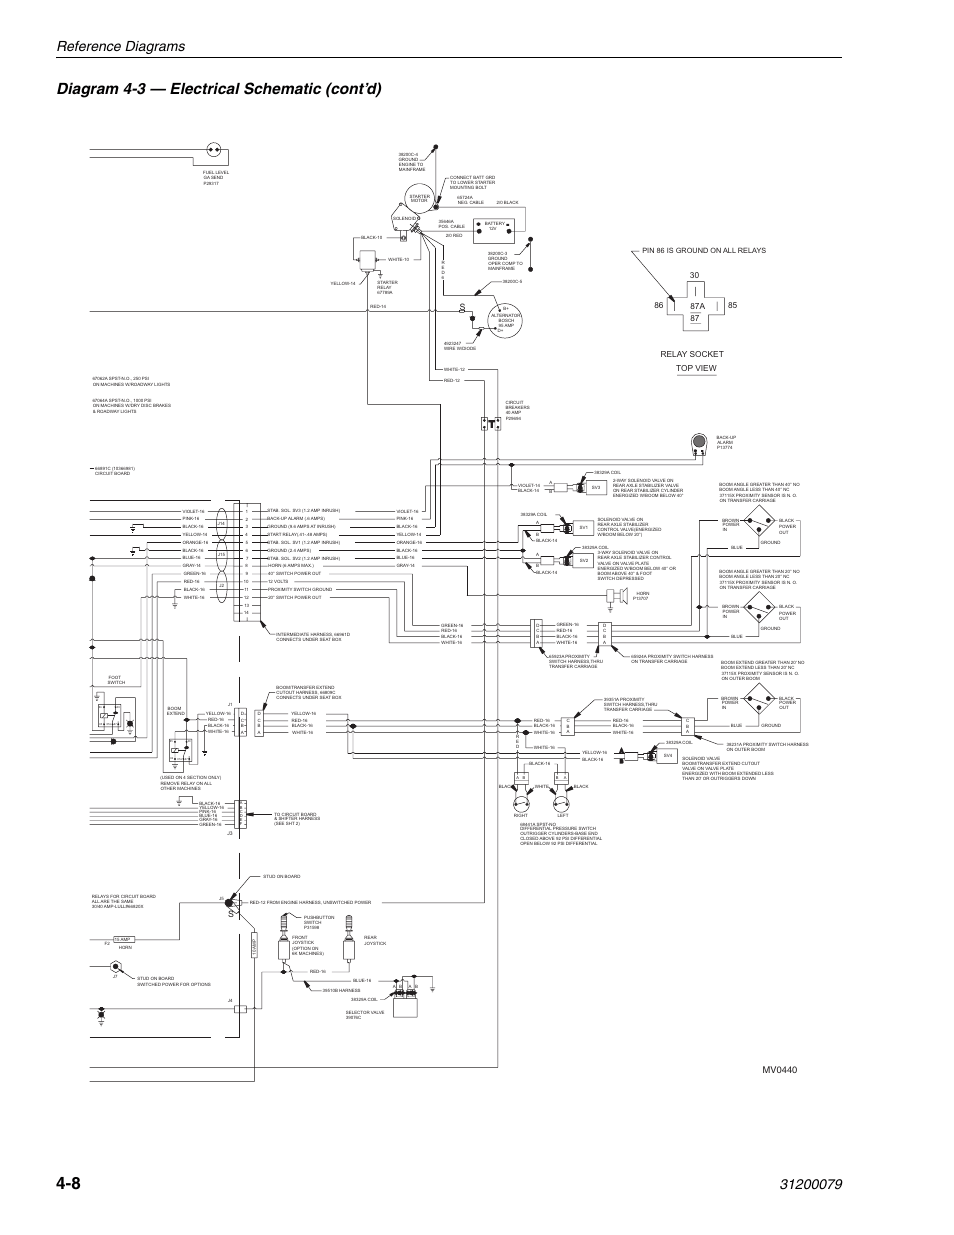 110 Electrical Schematic Wiring Diagram Diagram 4 3 Electrical Schematic Cont D Reference